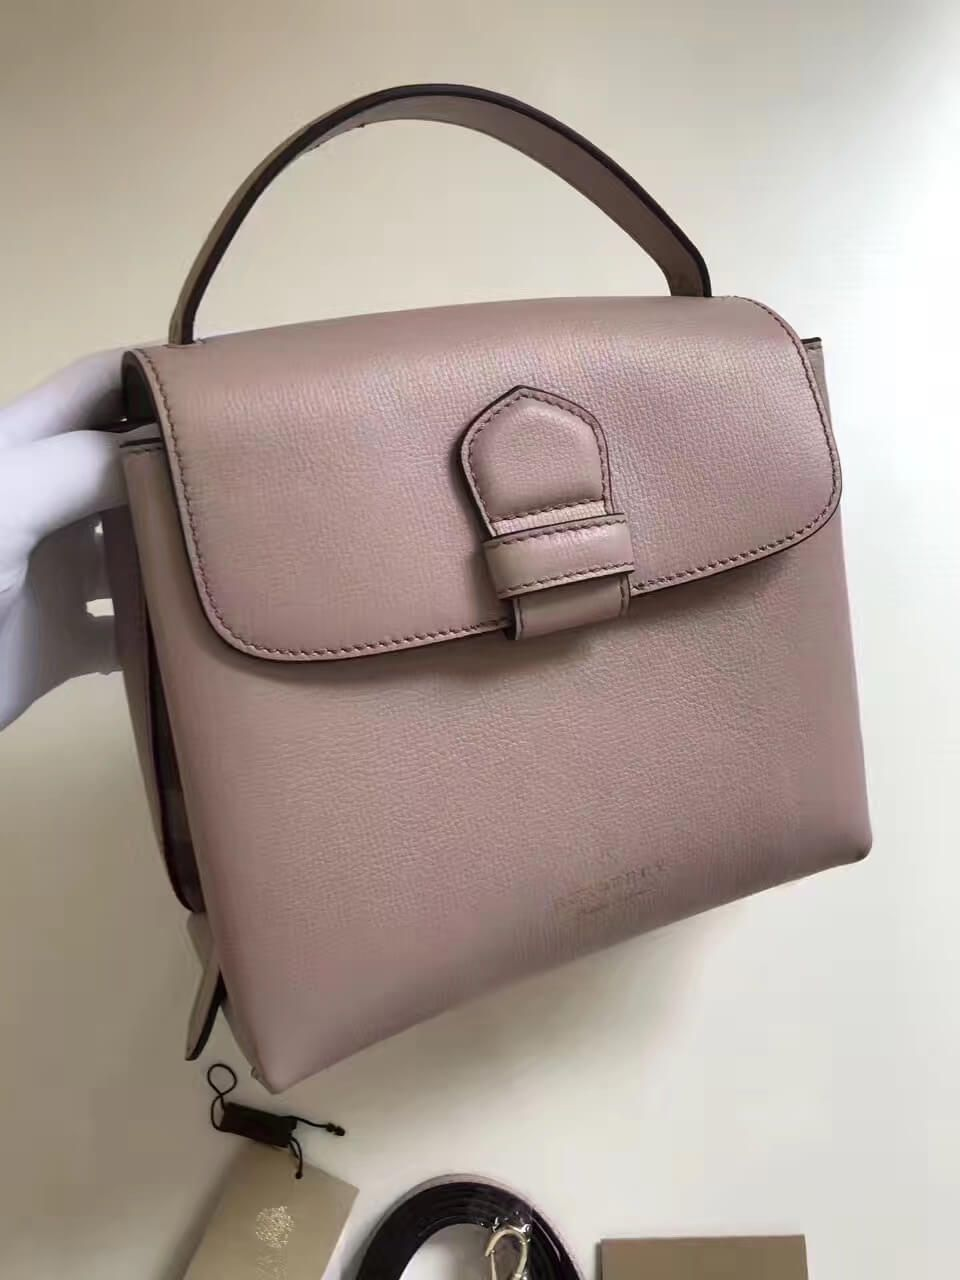 81ac279da1d0 Burberry Small Grainy Leather and House Check Tote Bag Pink 2017 ...